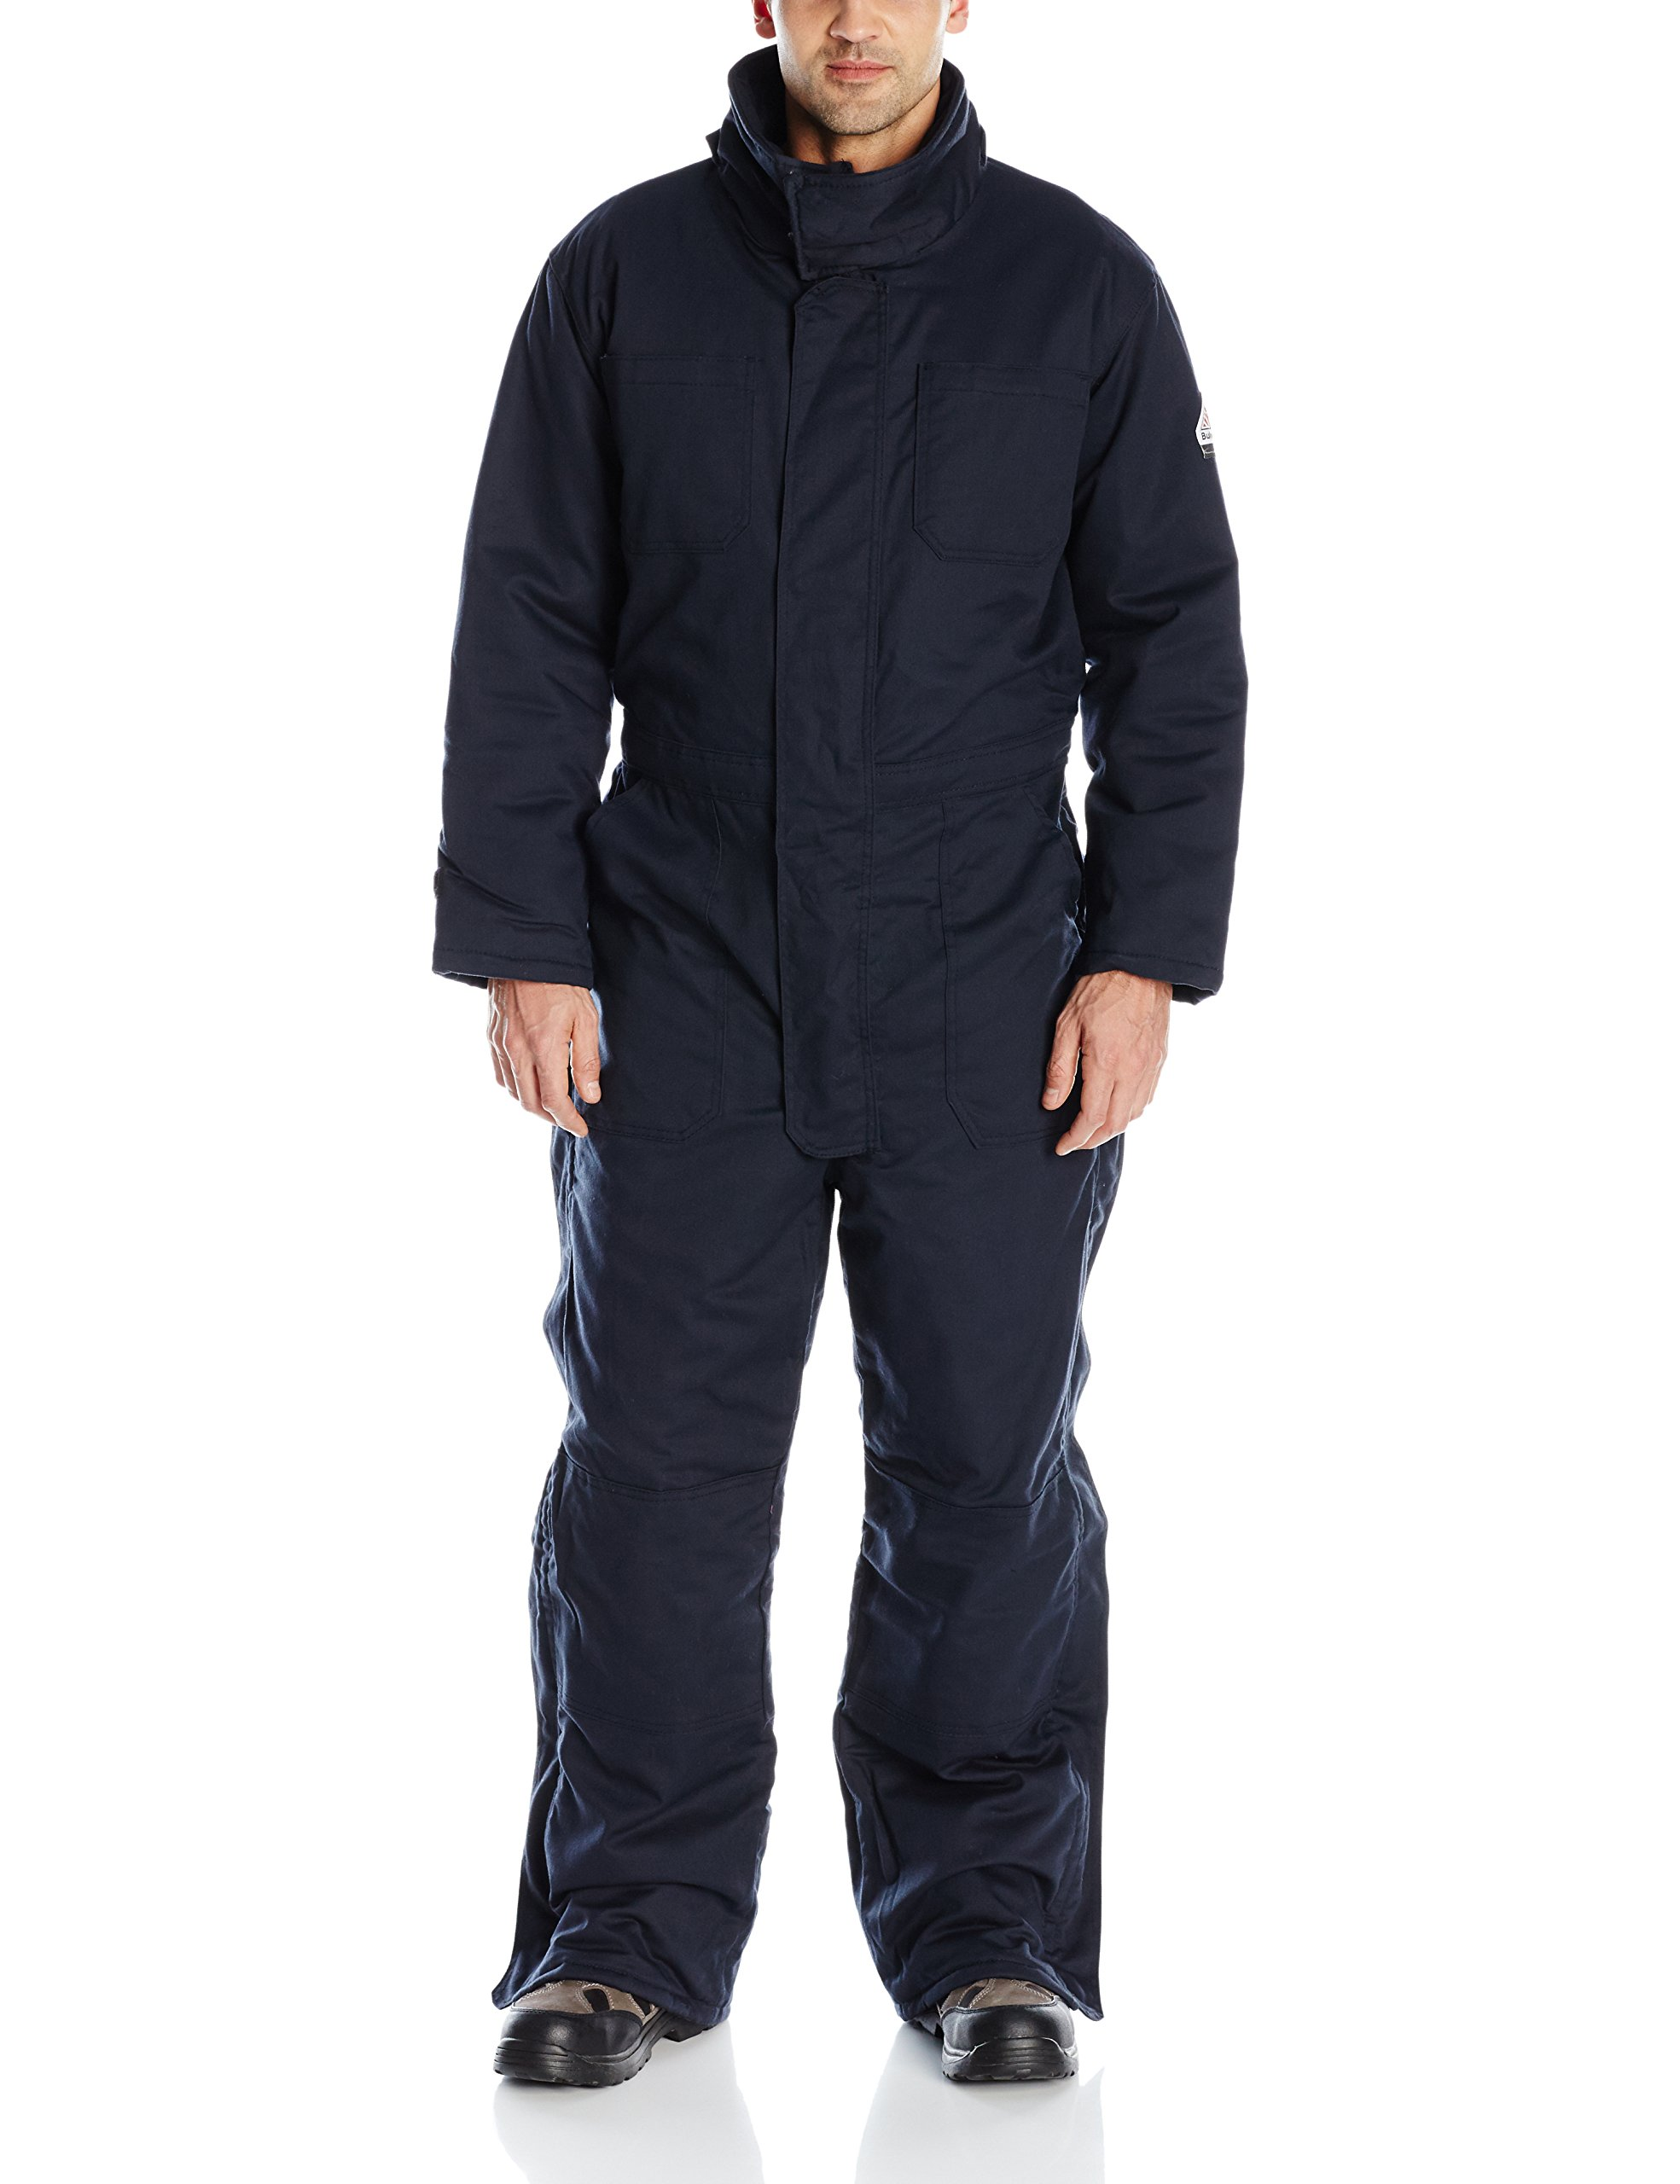 Bulwark Flame Resistant 7 oz Twill Cotton/Nylon Excel FR ComforTouch Long Premium Insulated Coverall with Concealed Snap Closure, Navy, X-Large